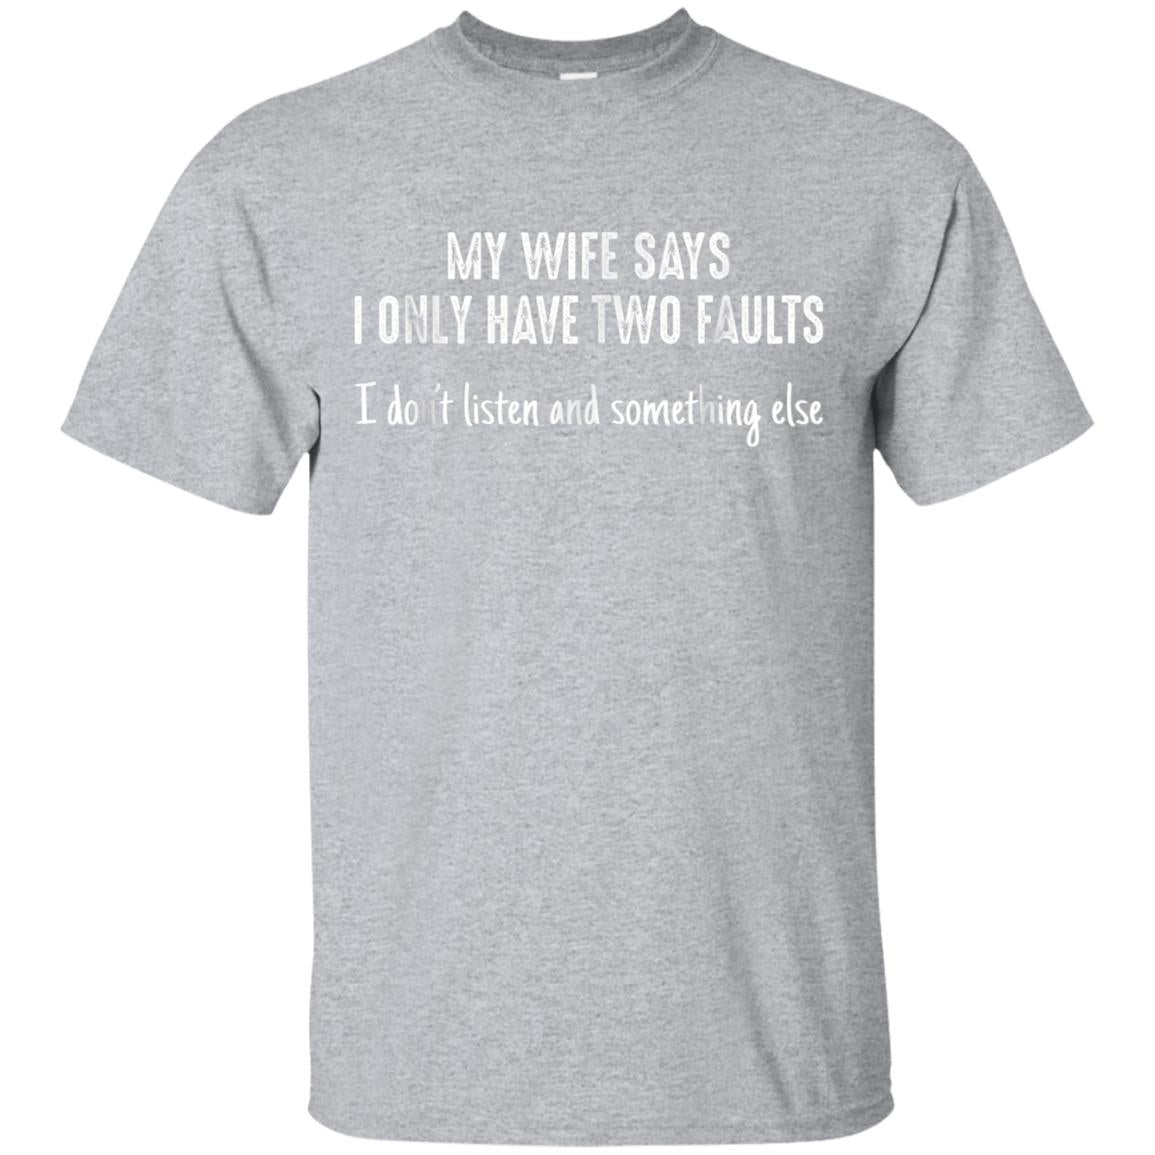 My Wife Says I Only Have Two Faults Shirt 99promocode